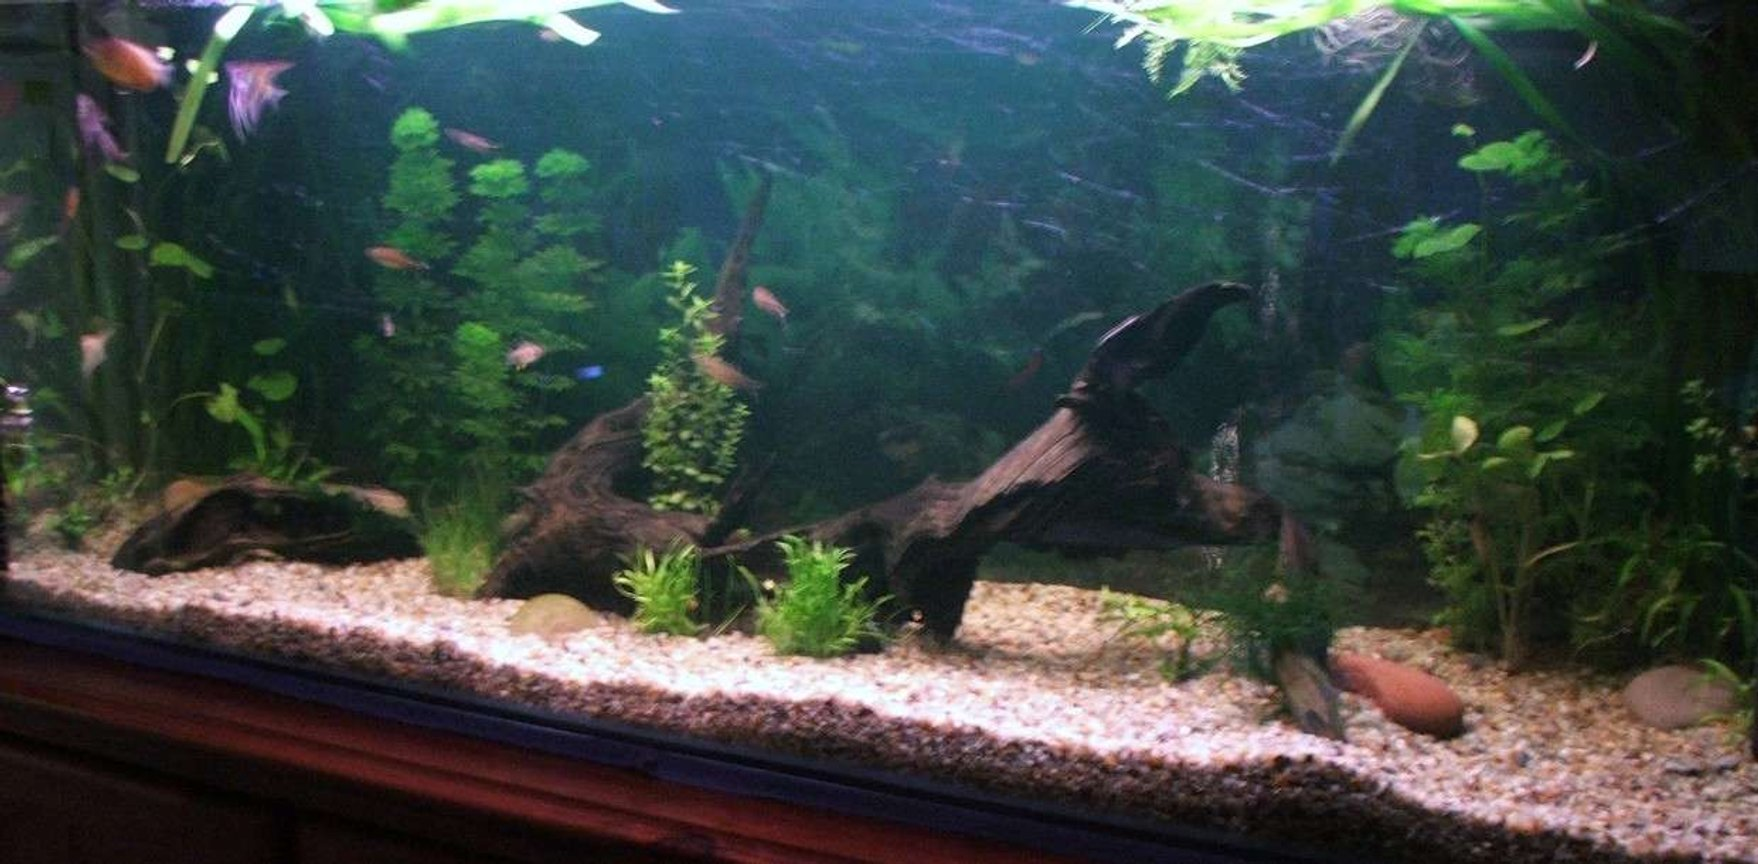 50 gallons planted tank (mostly live plants and fish) - My comunity planted 4' tank